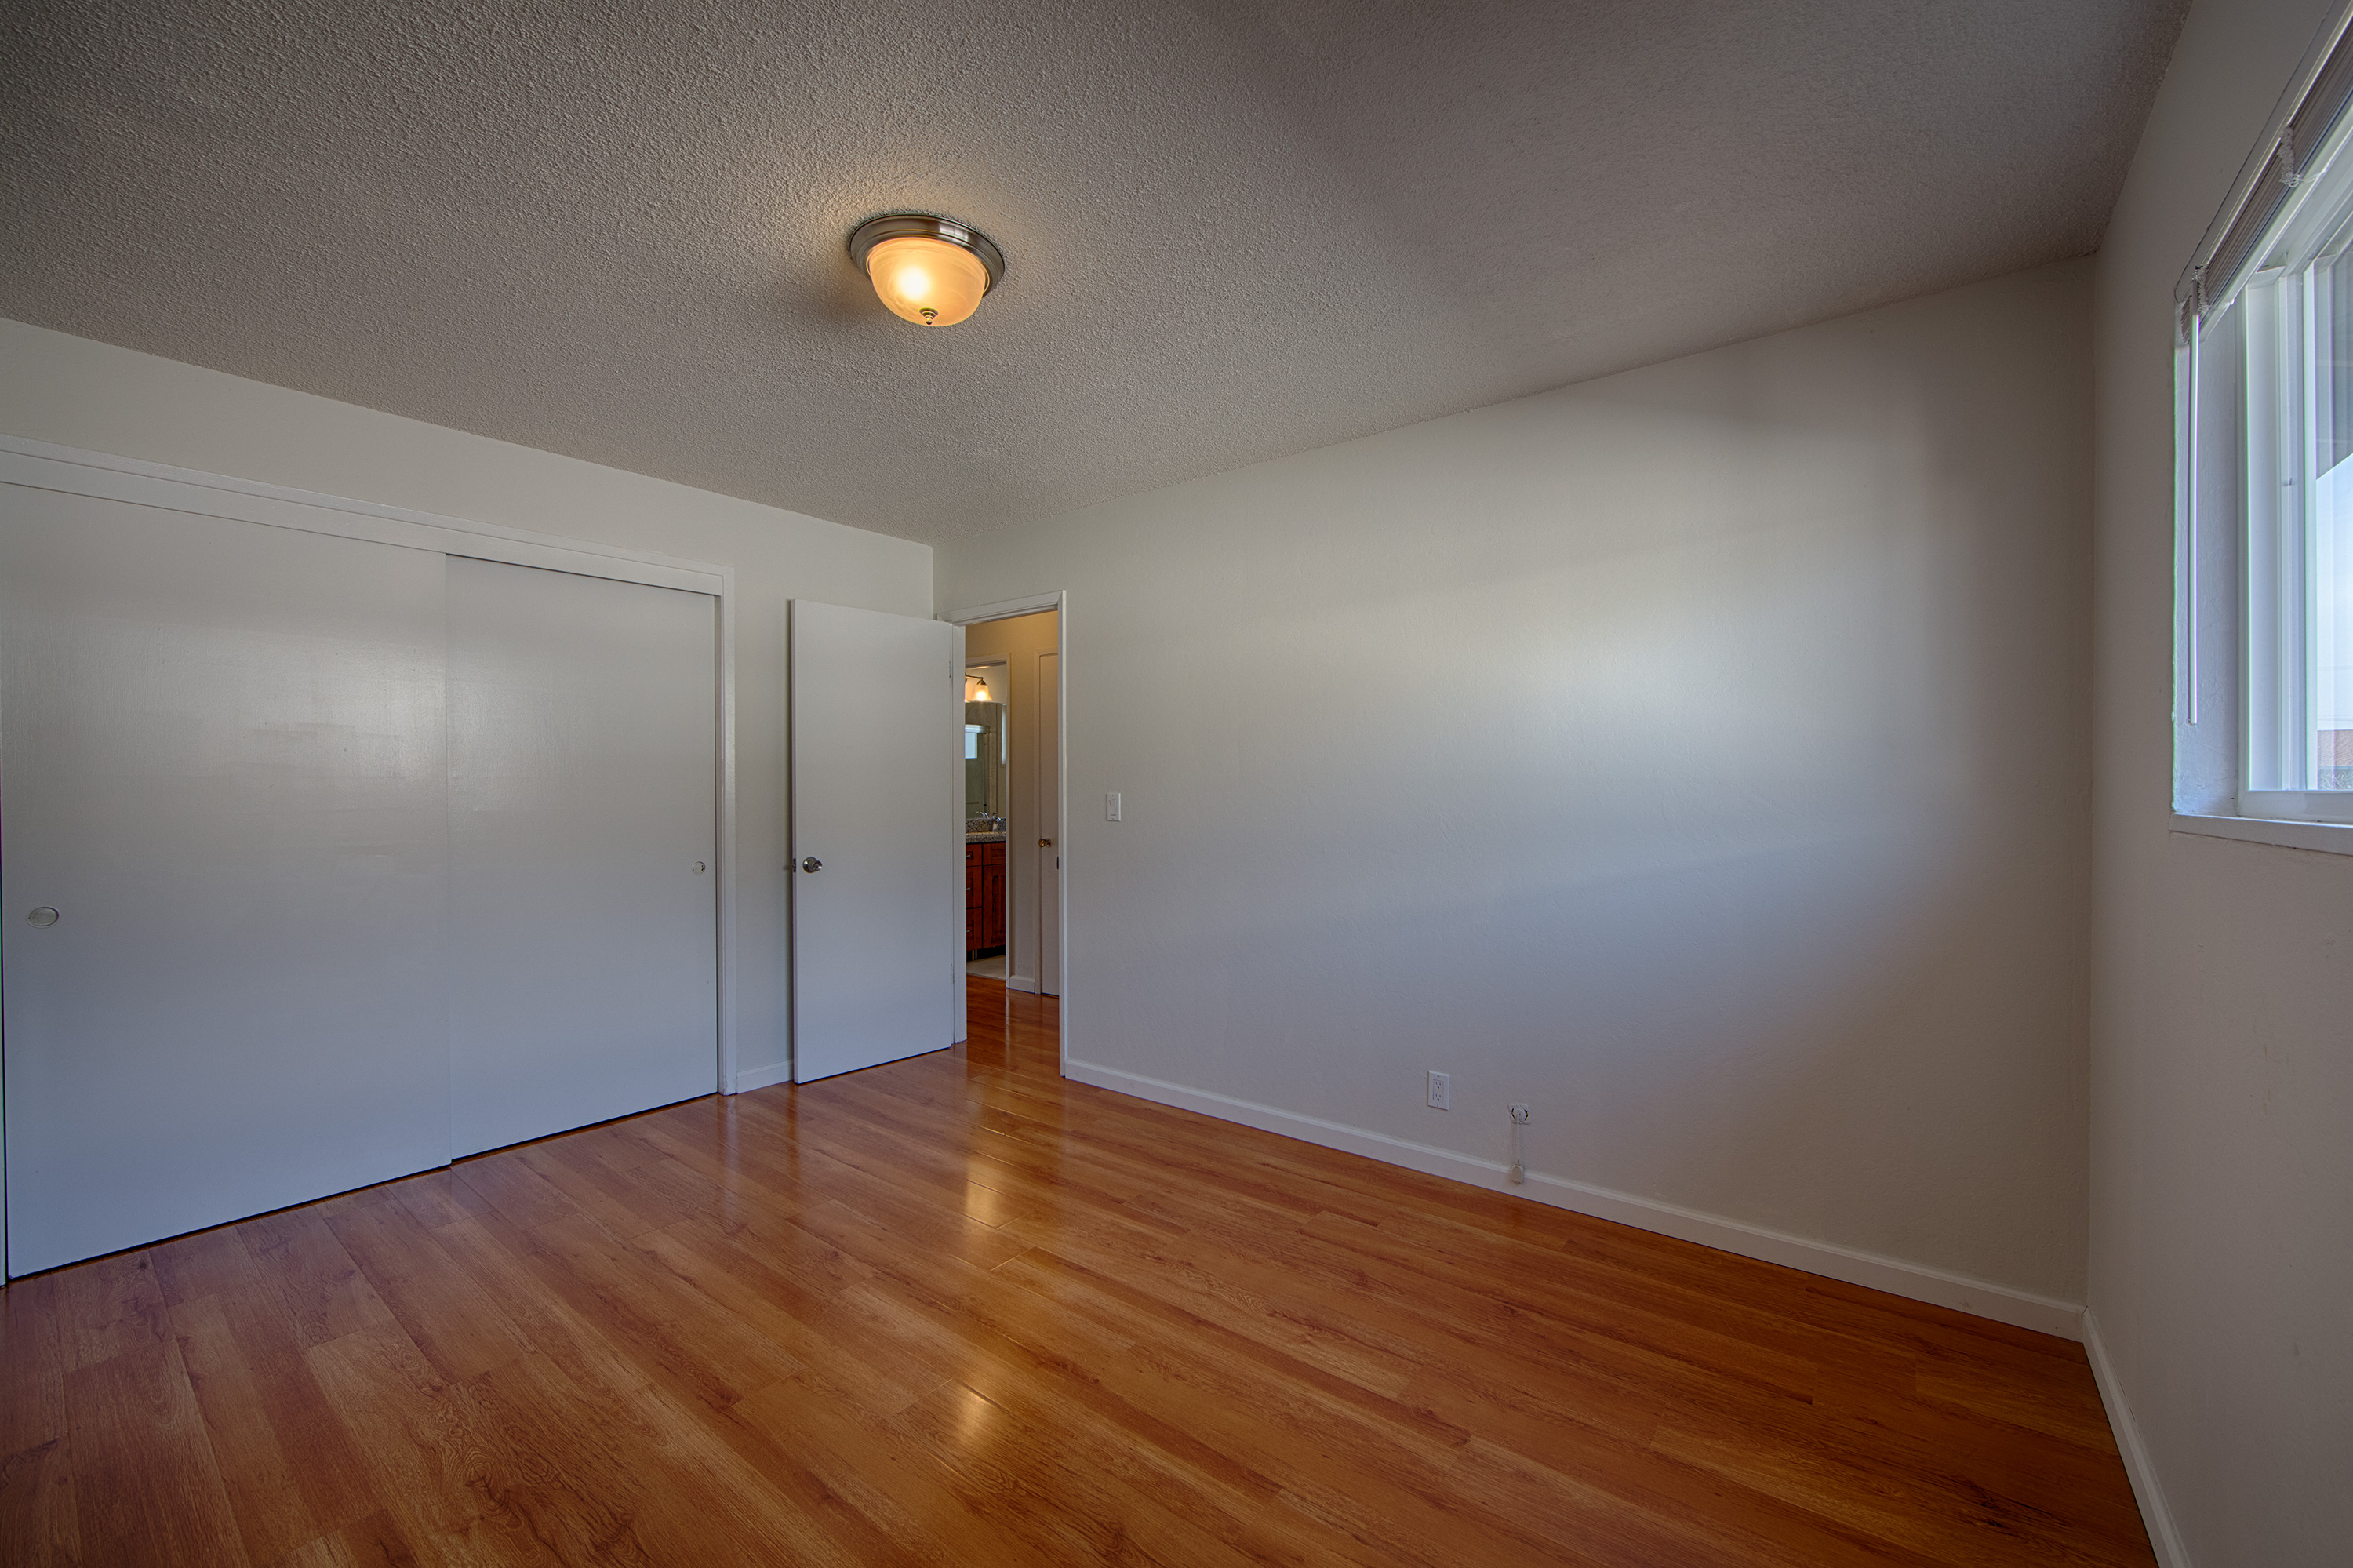 1662 Ontario Dr, Sunnyvale 94087 - Unit 3 Bedroom 1 (C)